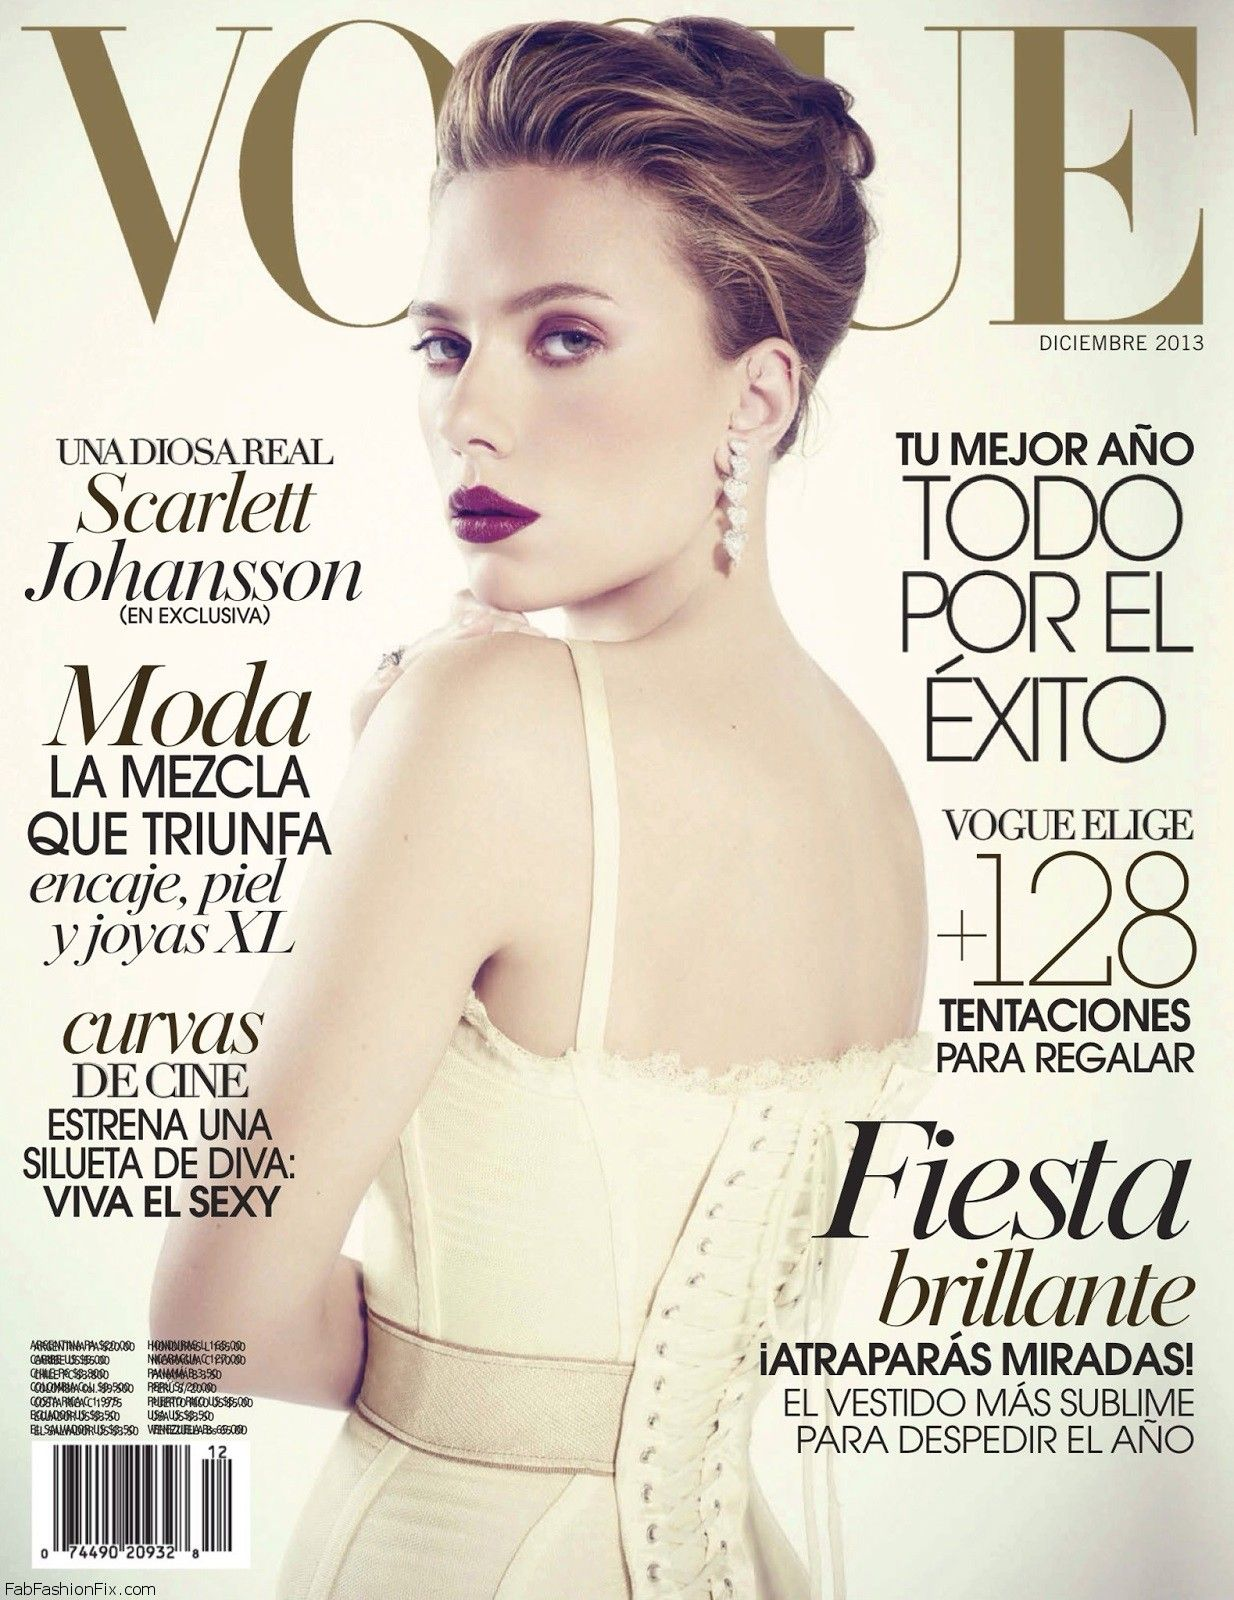 fashion_scans_remastered-scarlett_johansson-vogue_mexico-december_2013-scanned_by_vampirehorde-hq-1